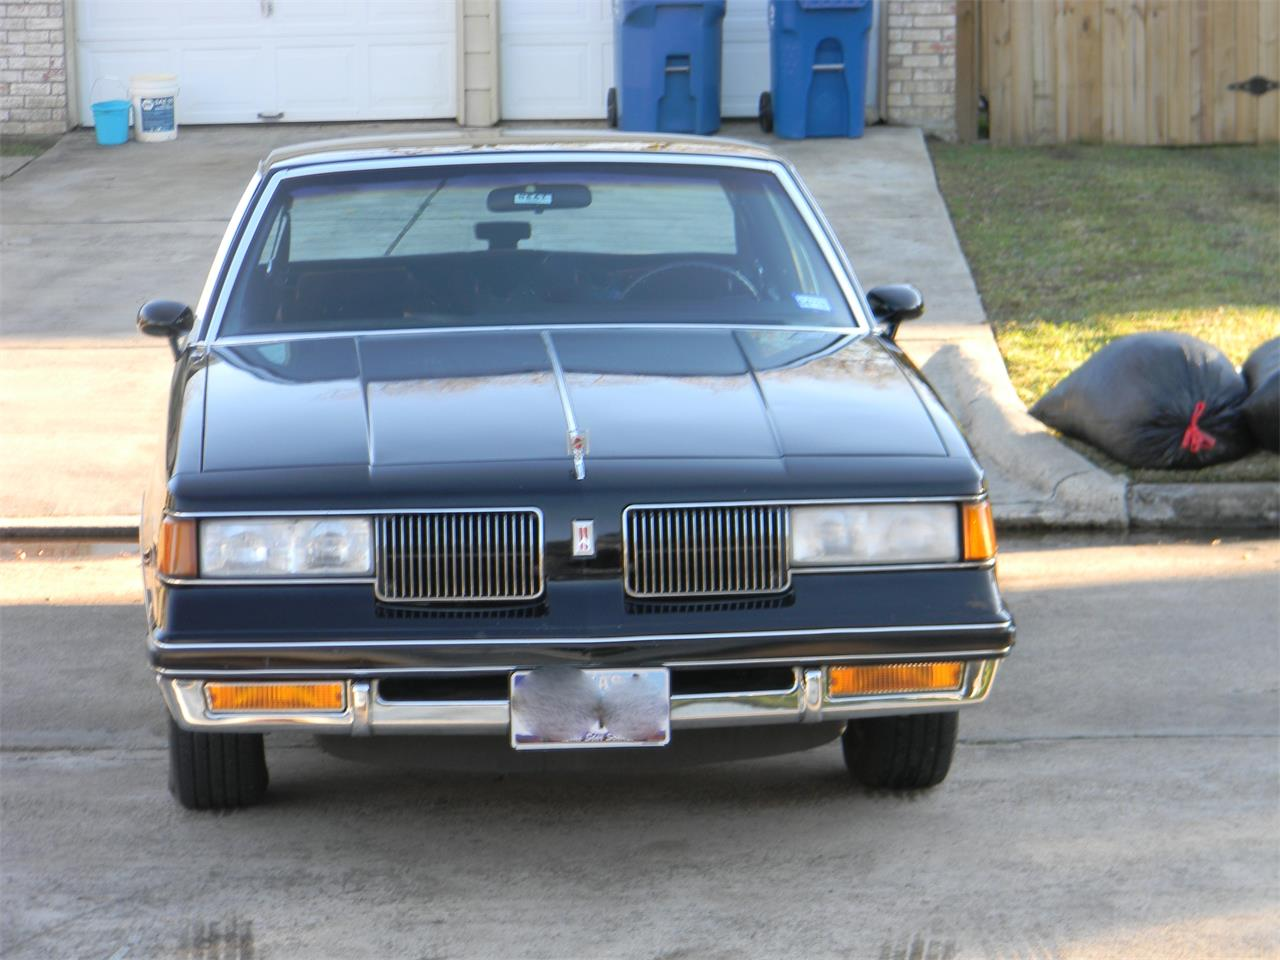 Large Picture of 1988 Oldsmobile Cutlass Supreme Brougham - $19,000.00 Offered by a Private Seller - MN5B